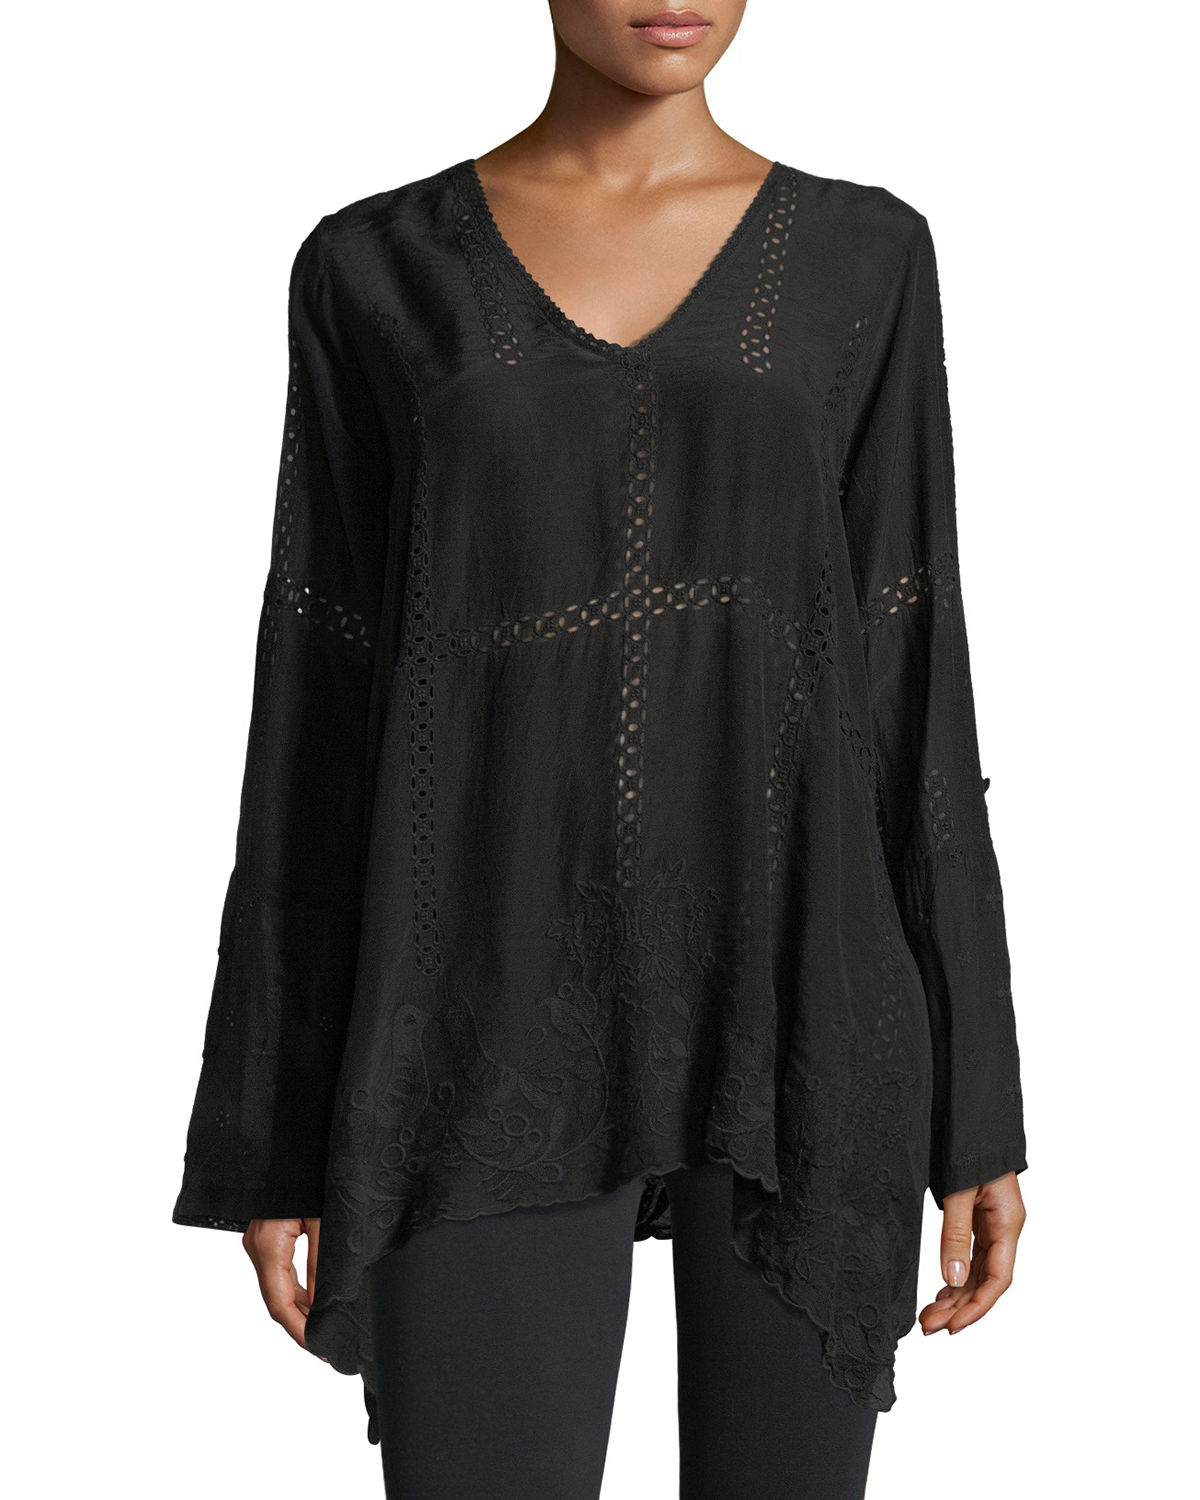 Johnny Was Tops PETITE CAGE FLARE LONG-SLEEVE TUNIC